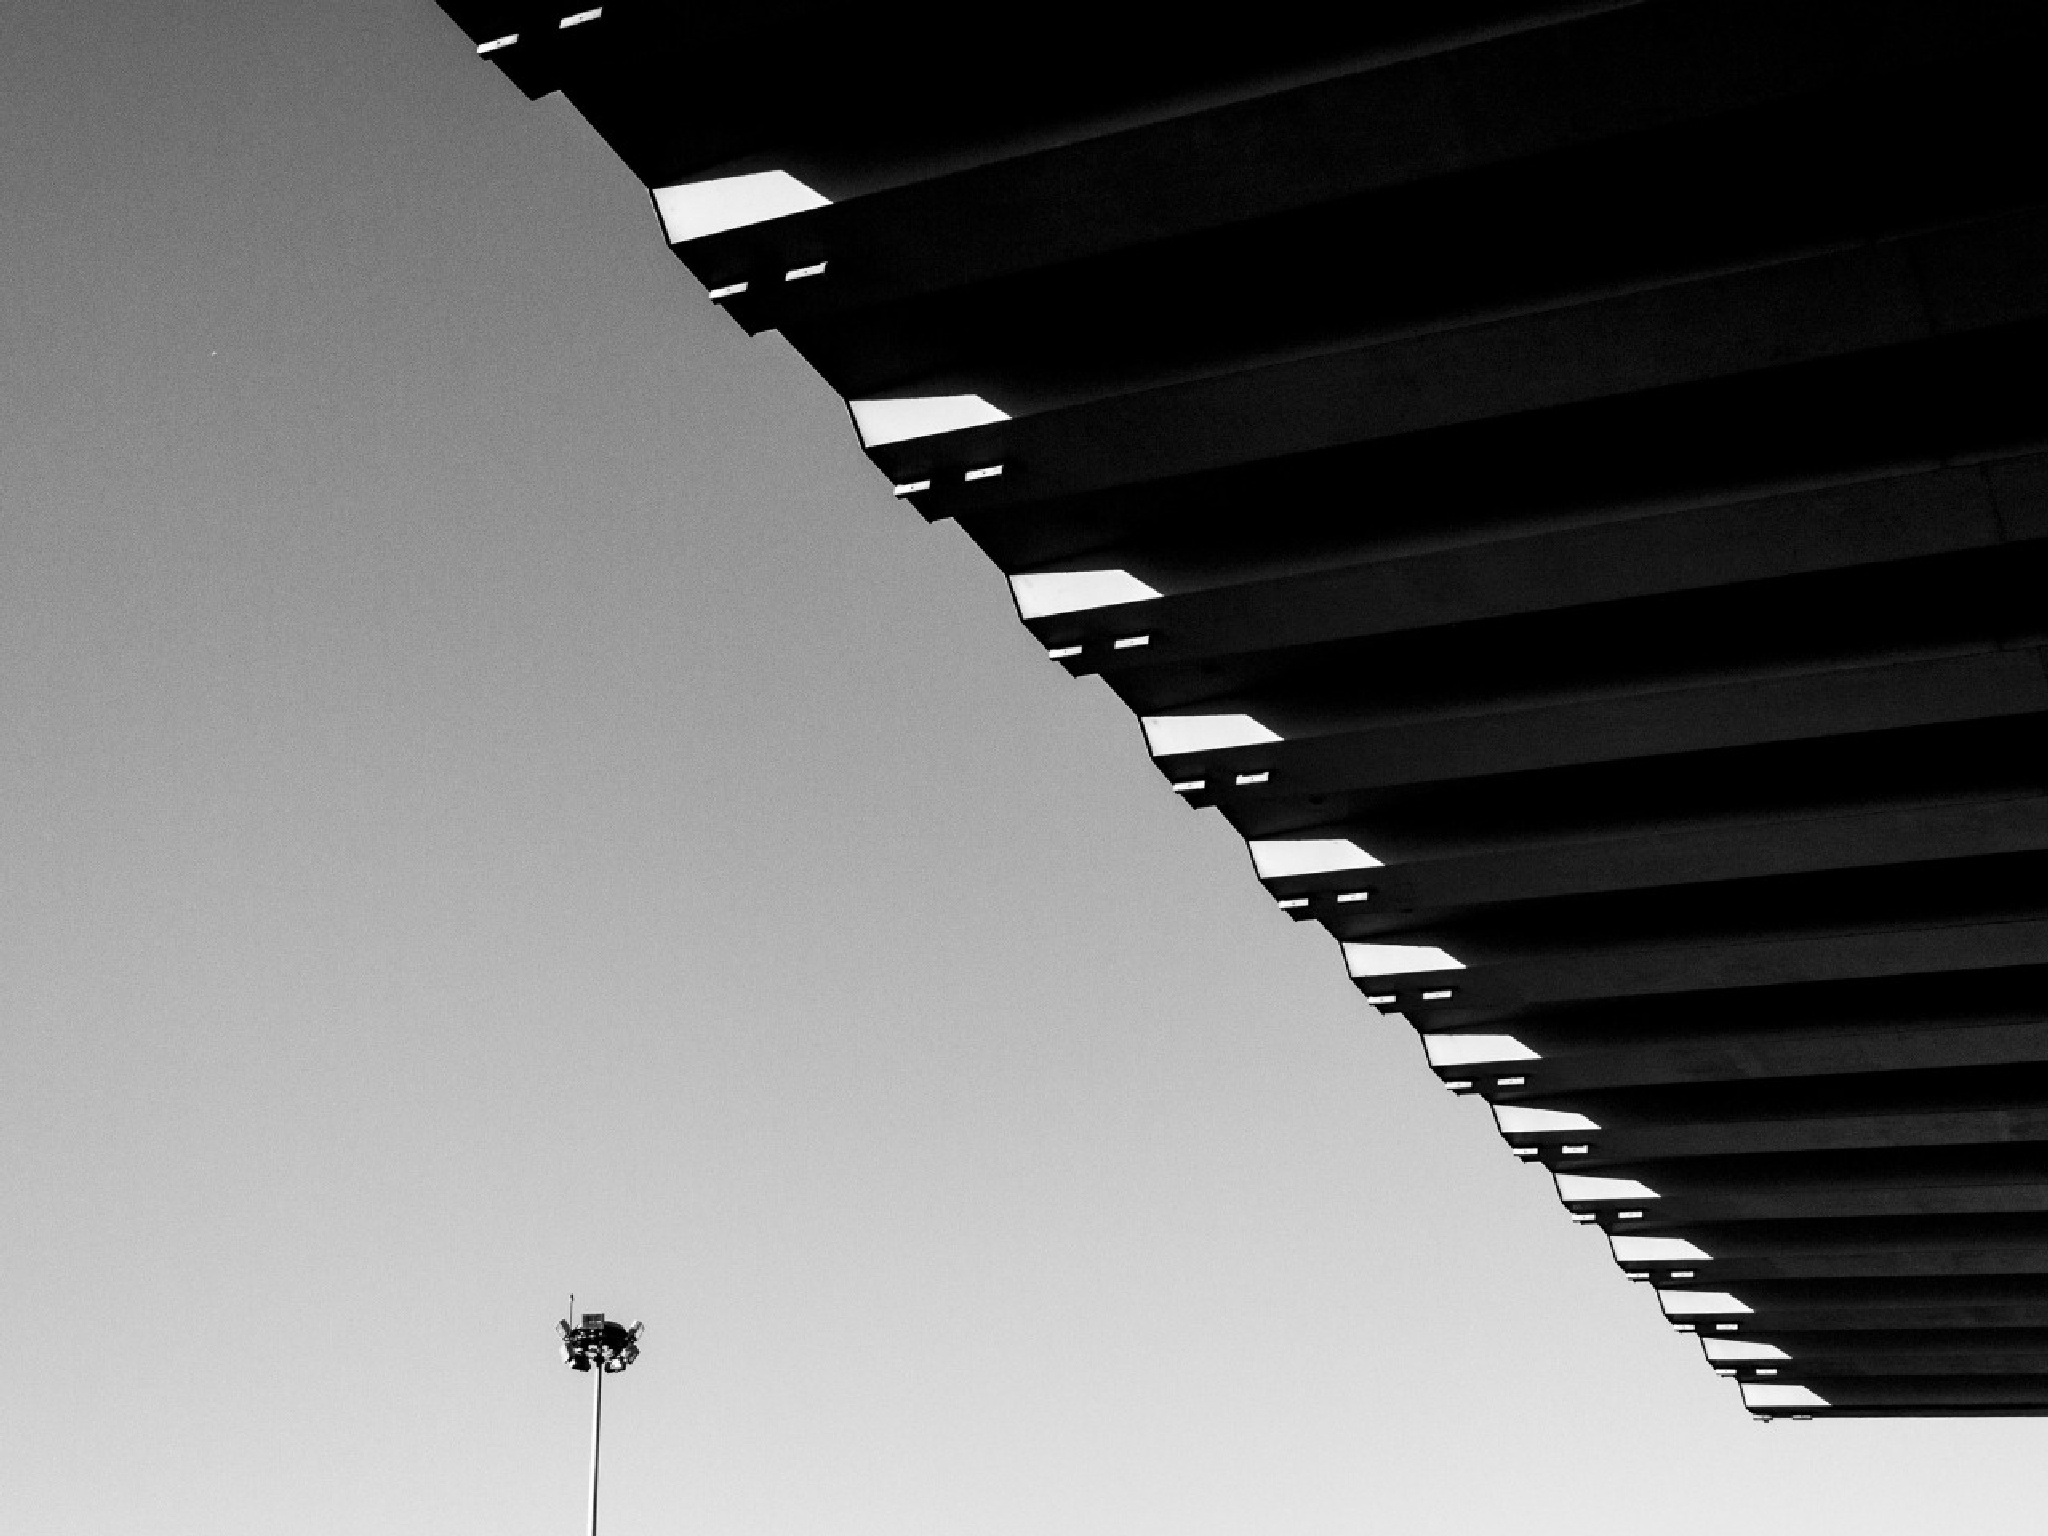 Barcelona Airport by mistaone